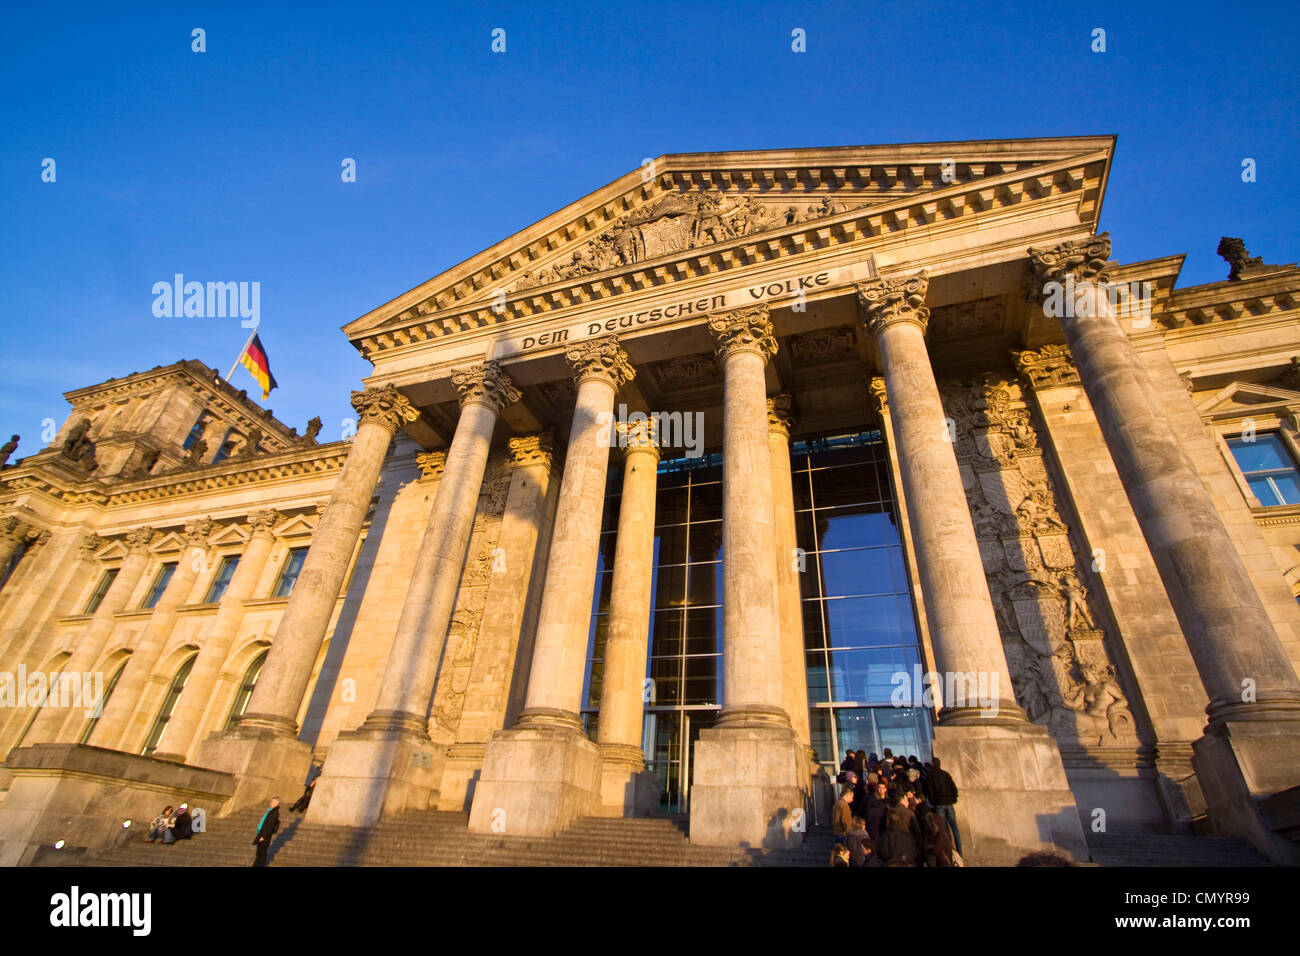 Reichstag building, columns at the entrance, people queeing, outdoors, Berlin Stock Foto